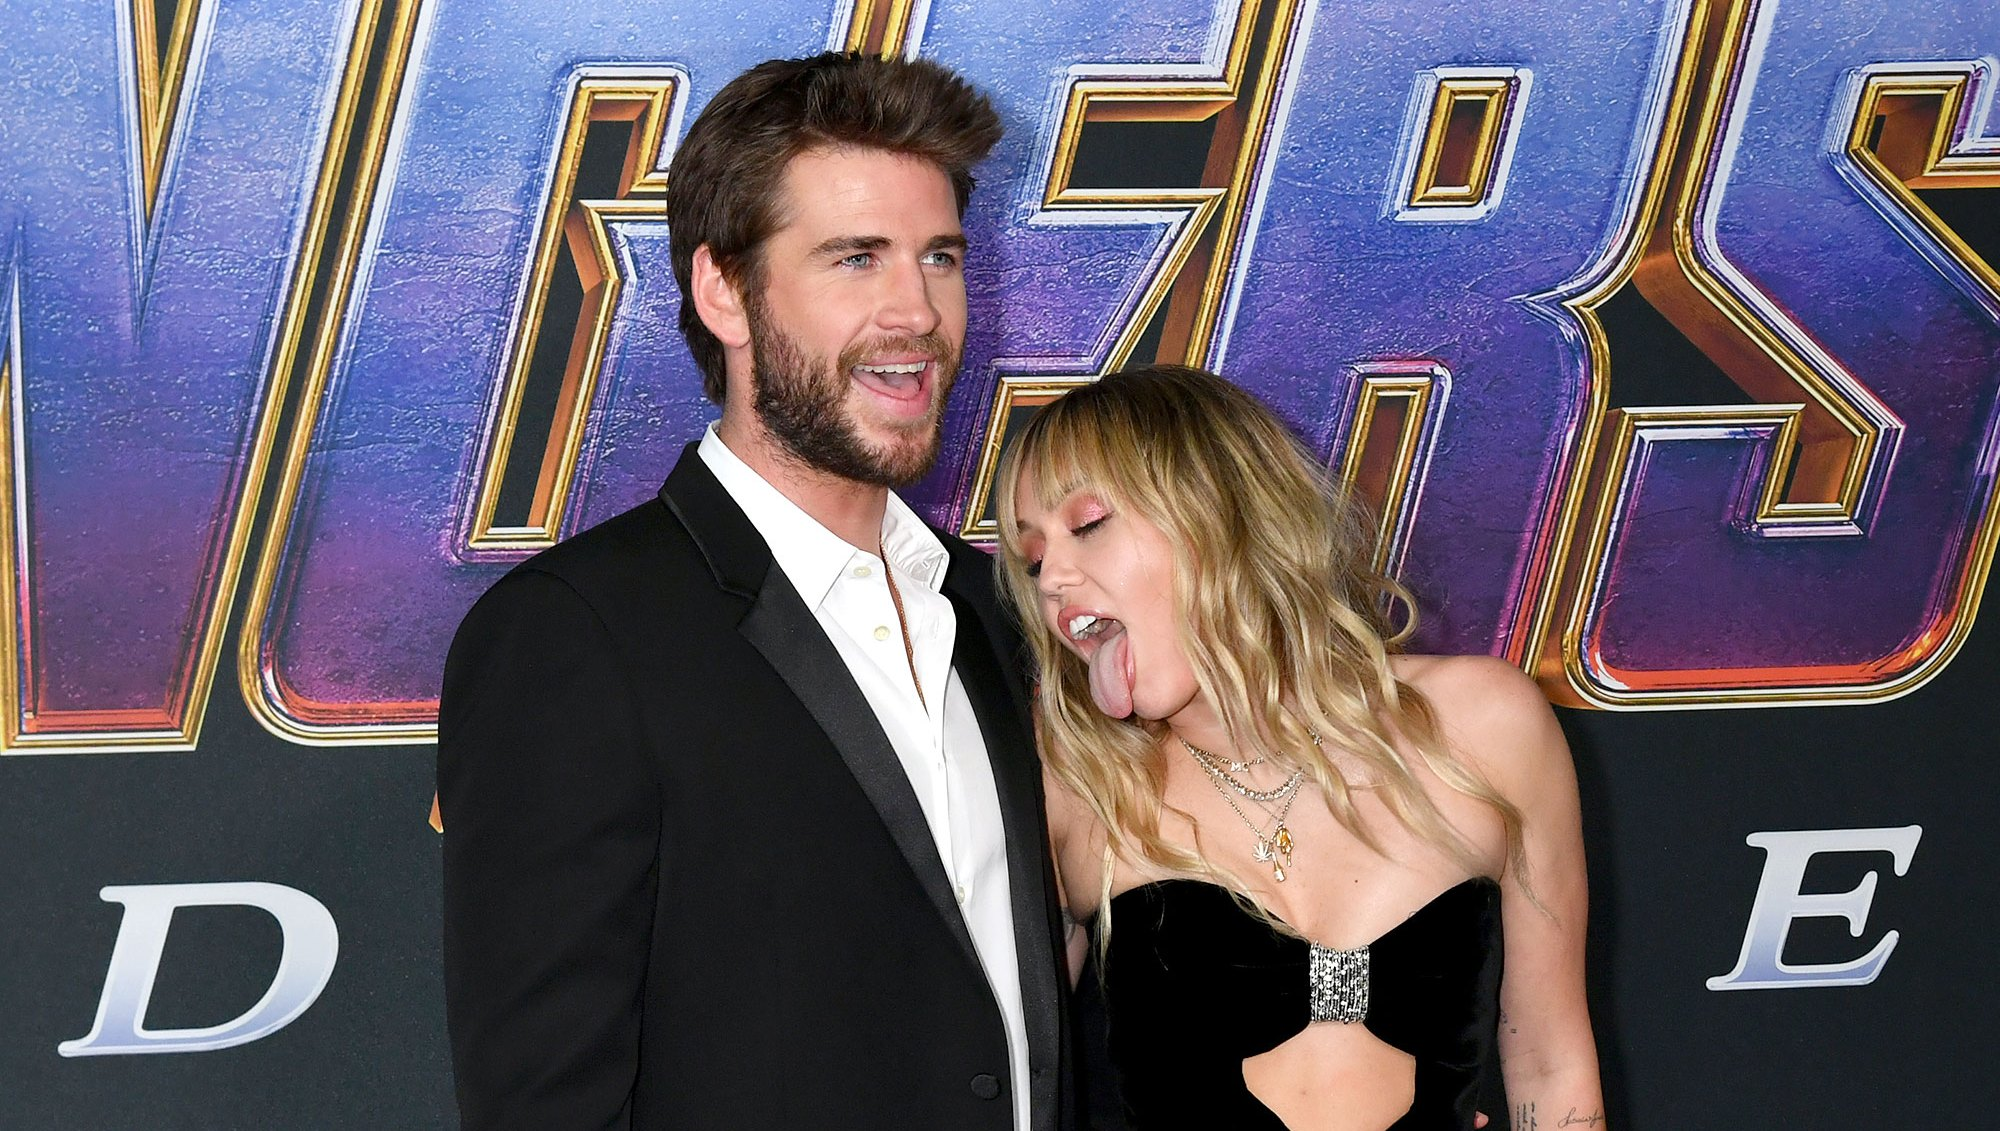 Miley Cyrus Licks Liam Hemsworth